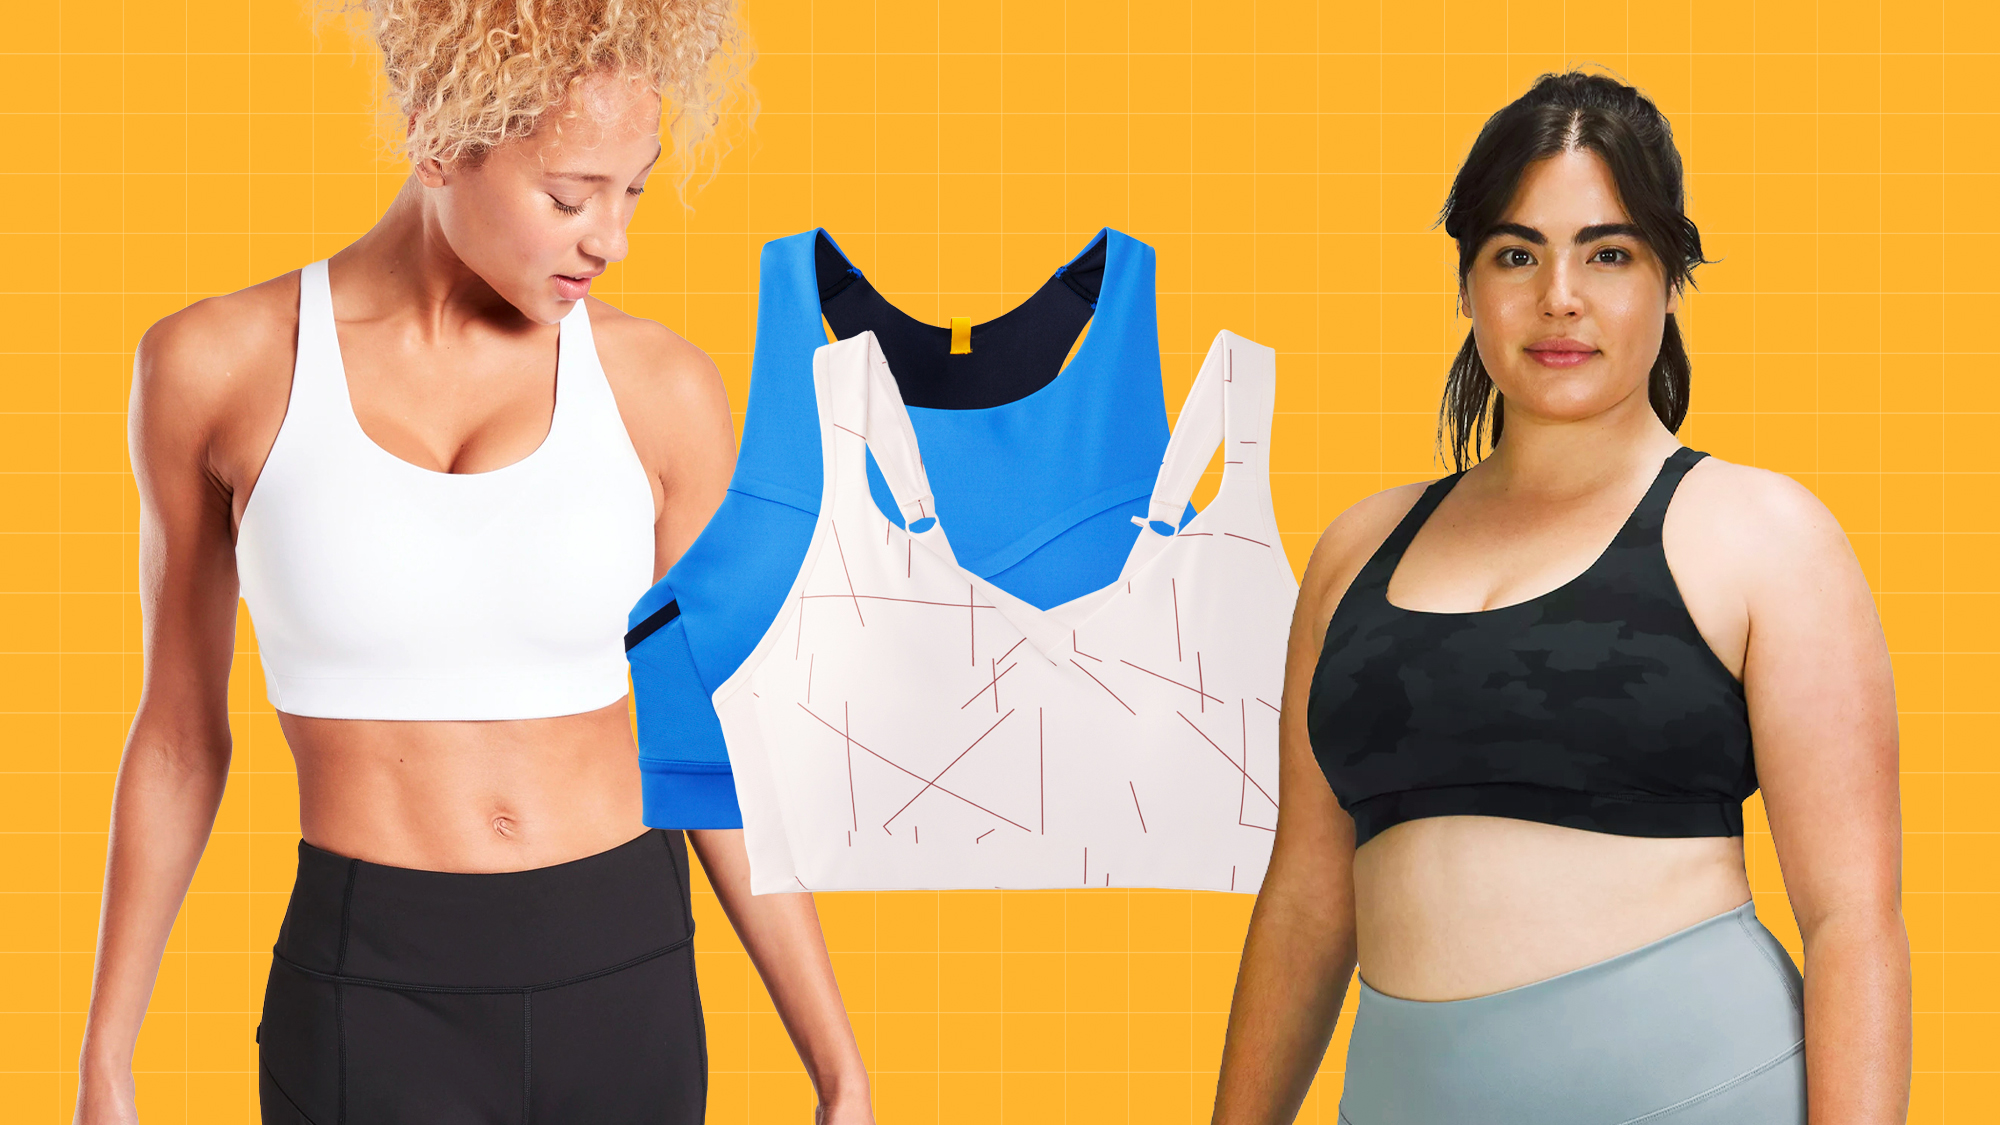 two women wearing sports bras and two sports bras on a designed background